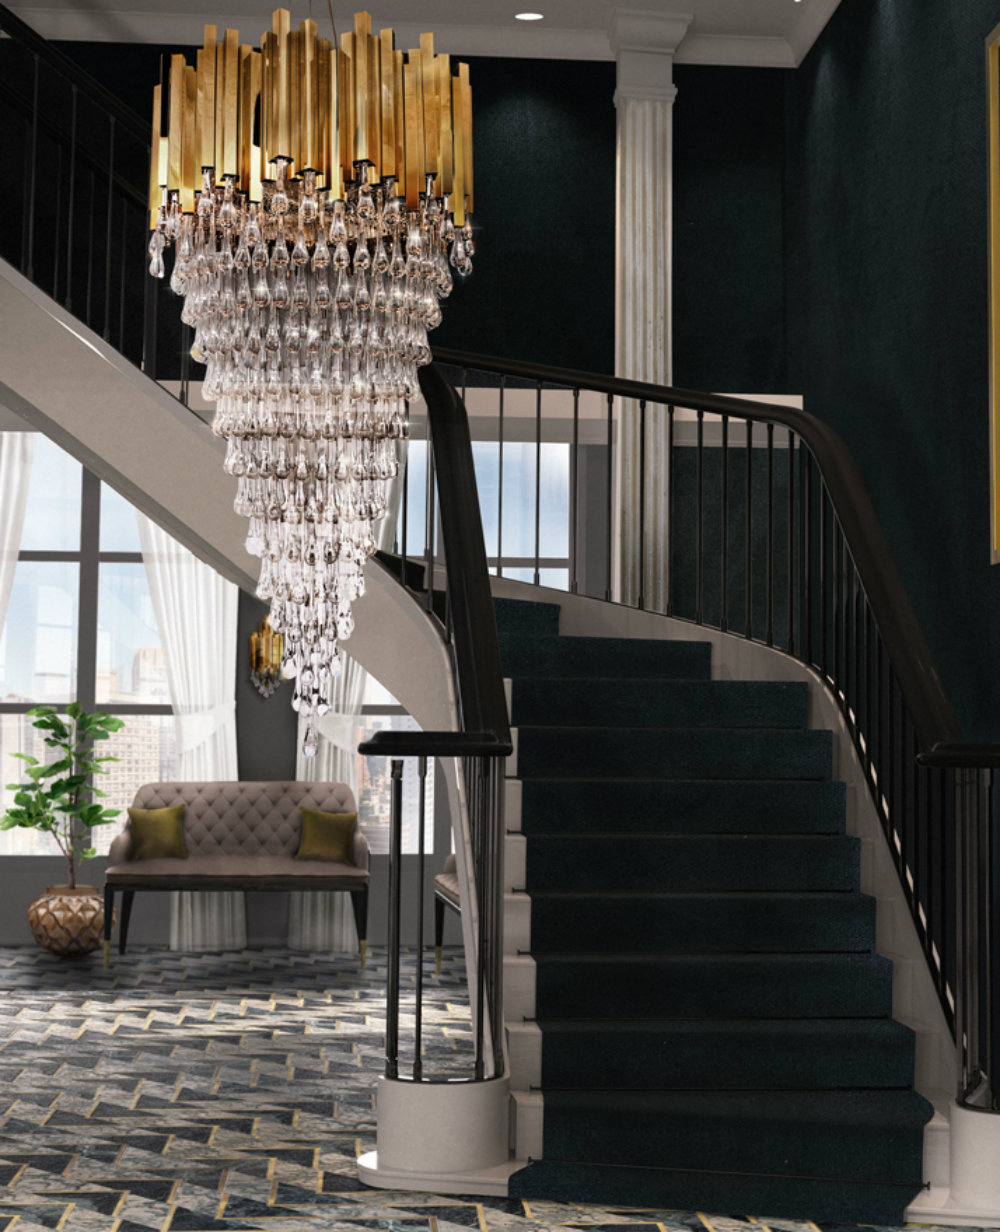 Make A Killer First Impression With These Chandeliers For Your Entryway